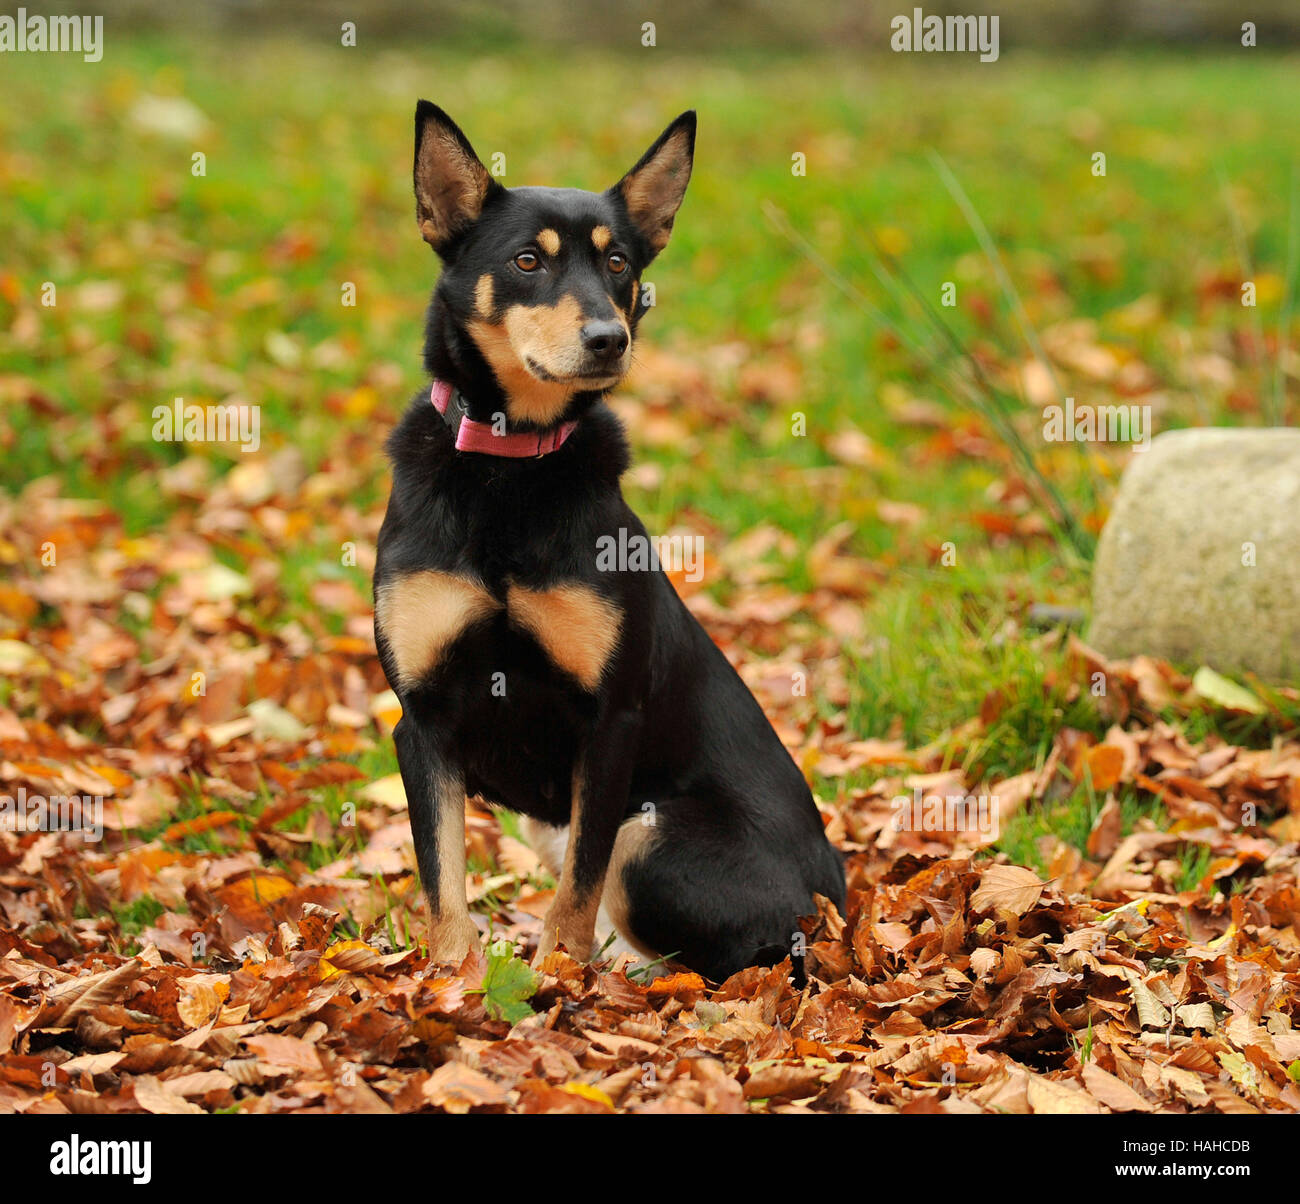 Kelpie australiano fall uk Imagen De Stock